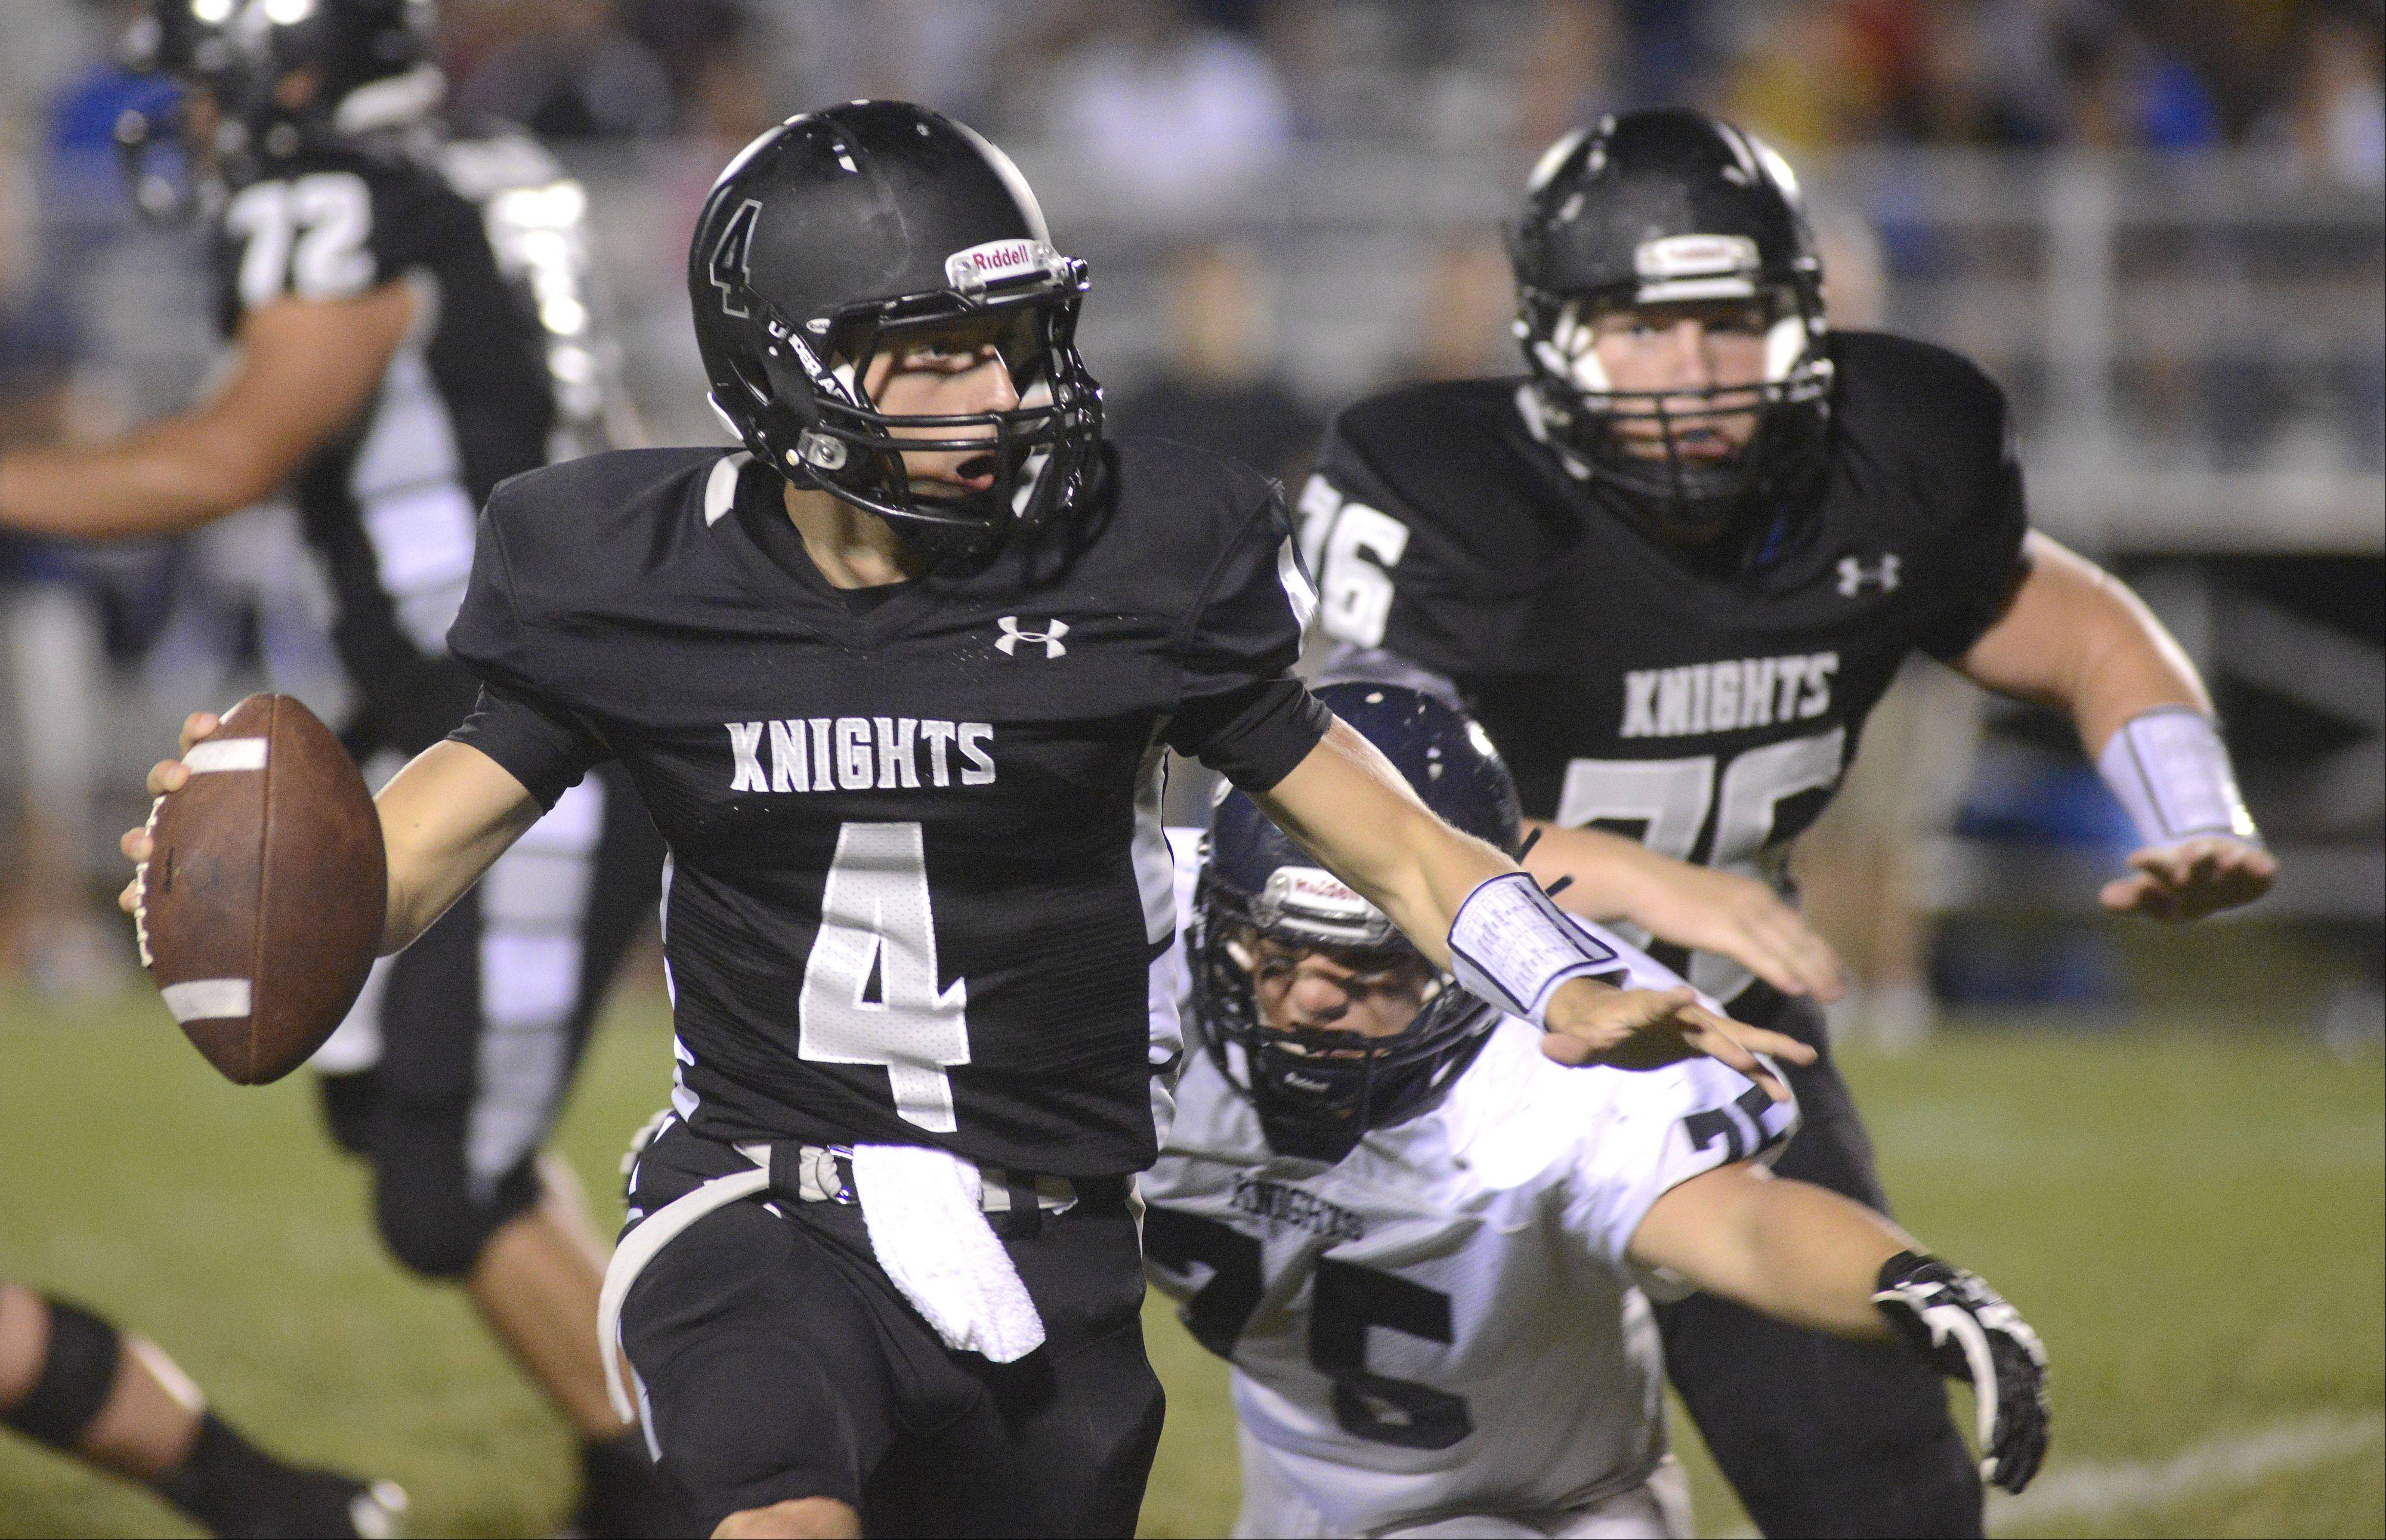 Kaneland quarterback Drew David looks to pass the ball before being sacked by IC Catholic Prep�s Sam Lytton in the second quarter.